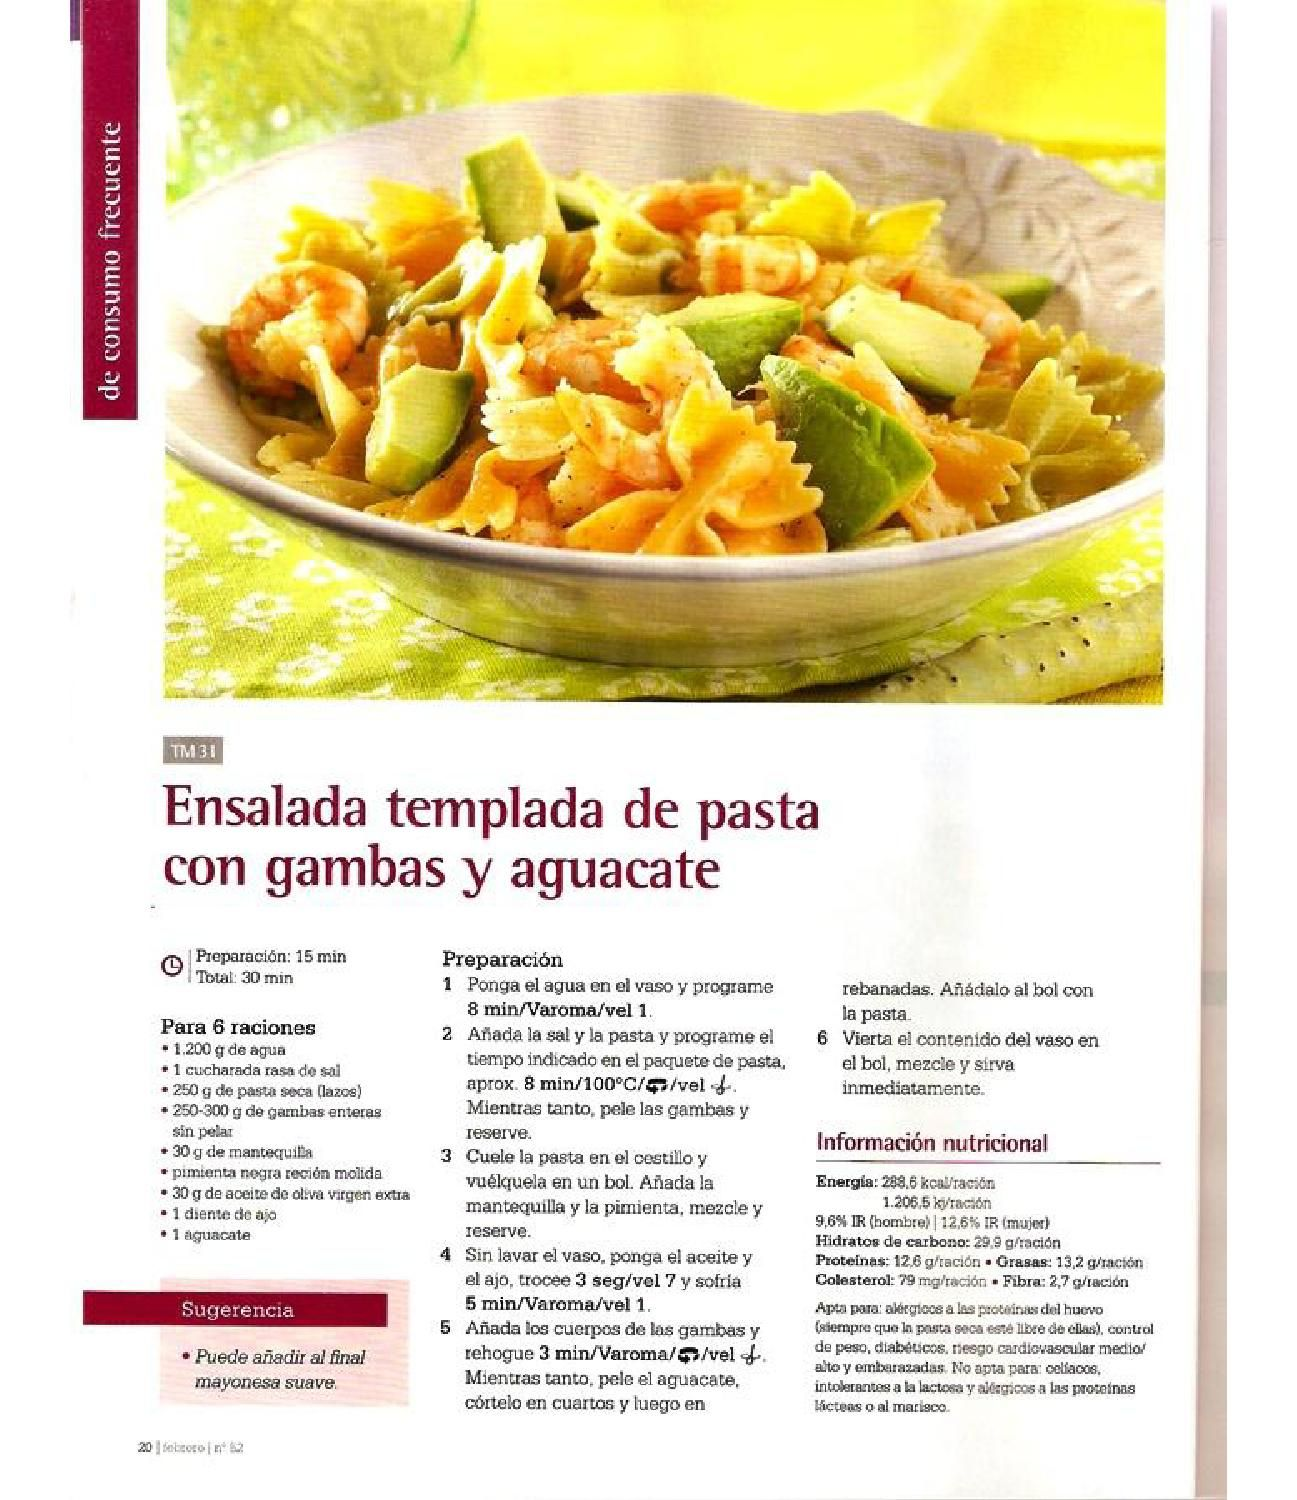 Revista thermomix n 52 cocina diaria simple y deliciosa for Cocina saludable en 30 minutos thermomix